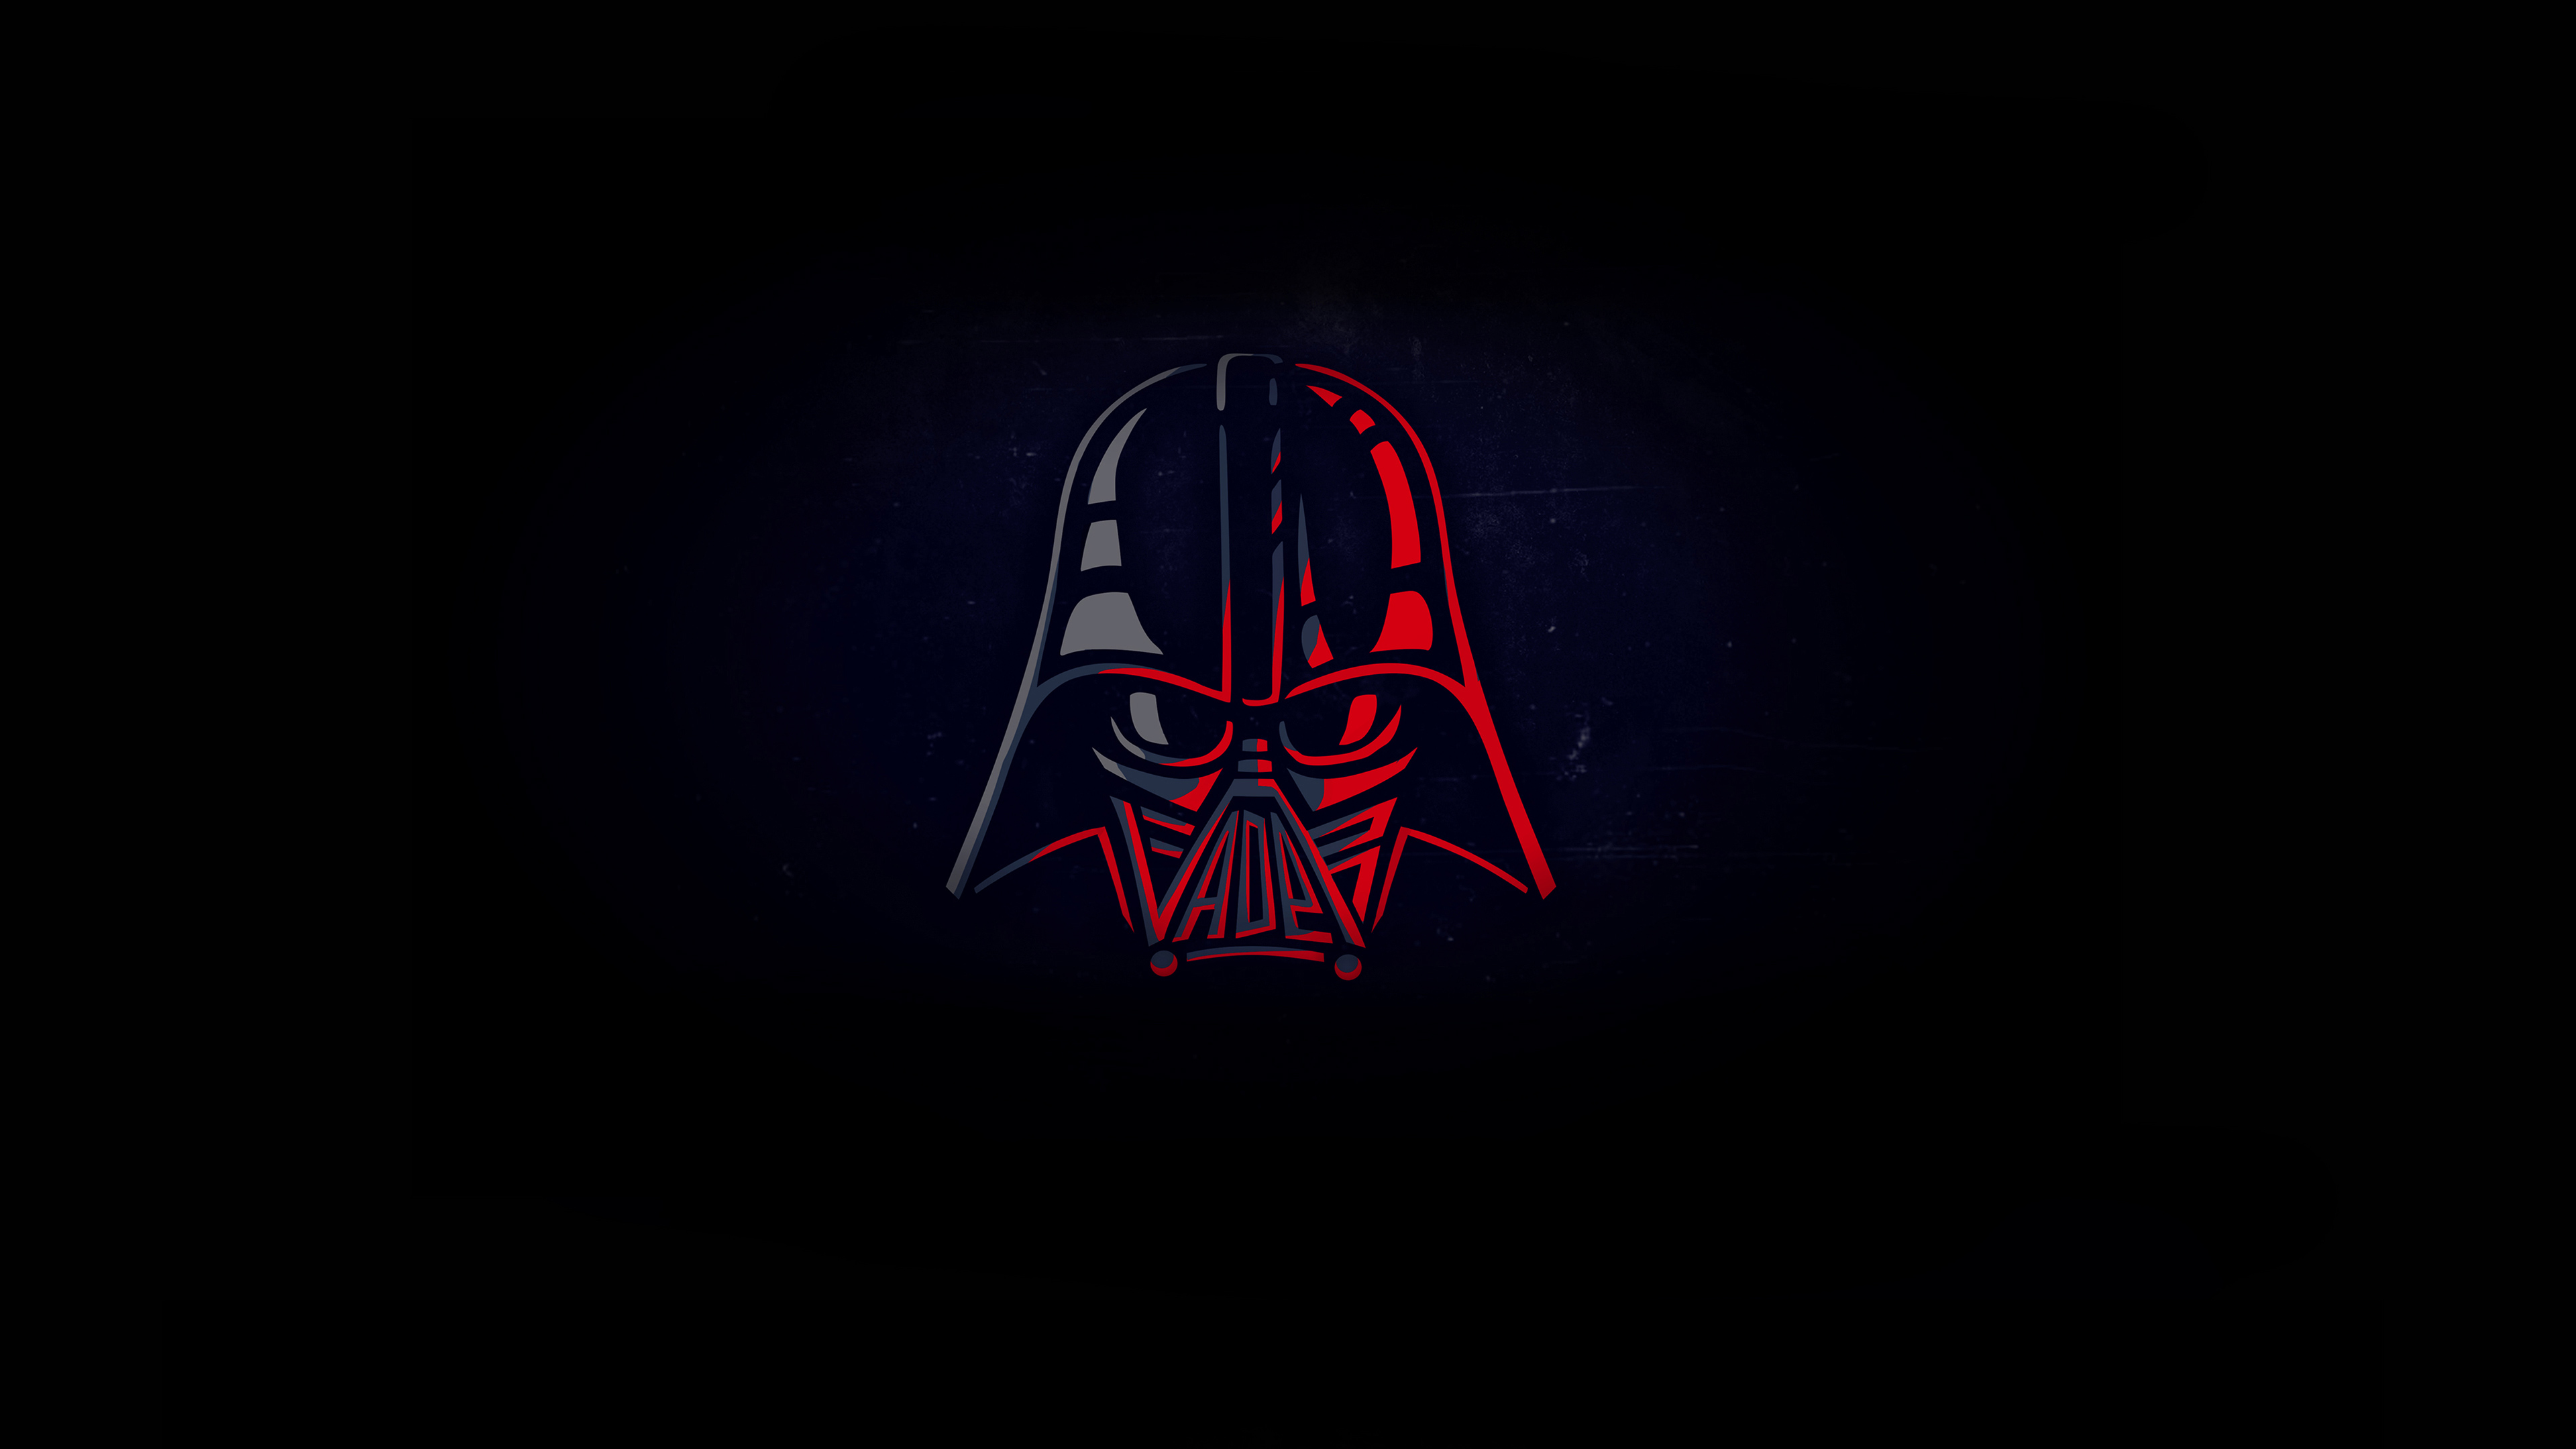 Darth Vader Minimalist Wallpaper 4k Ultra Hd Id 3635